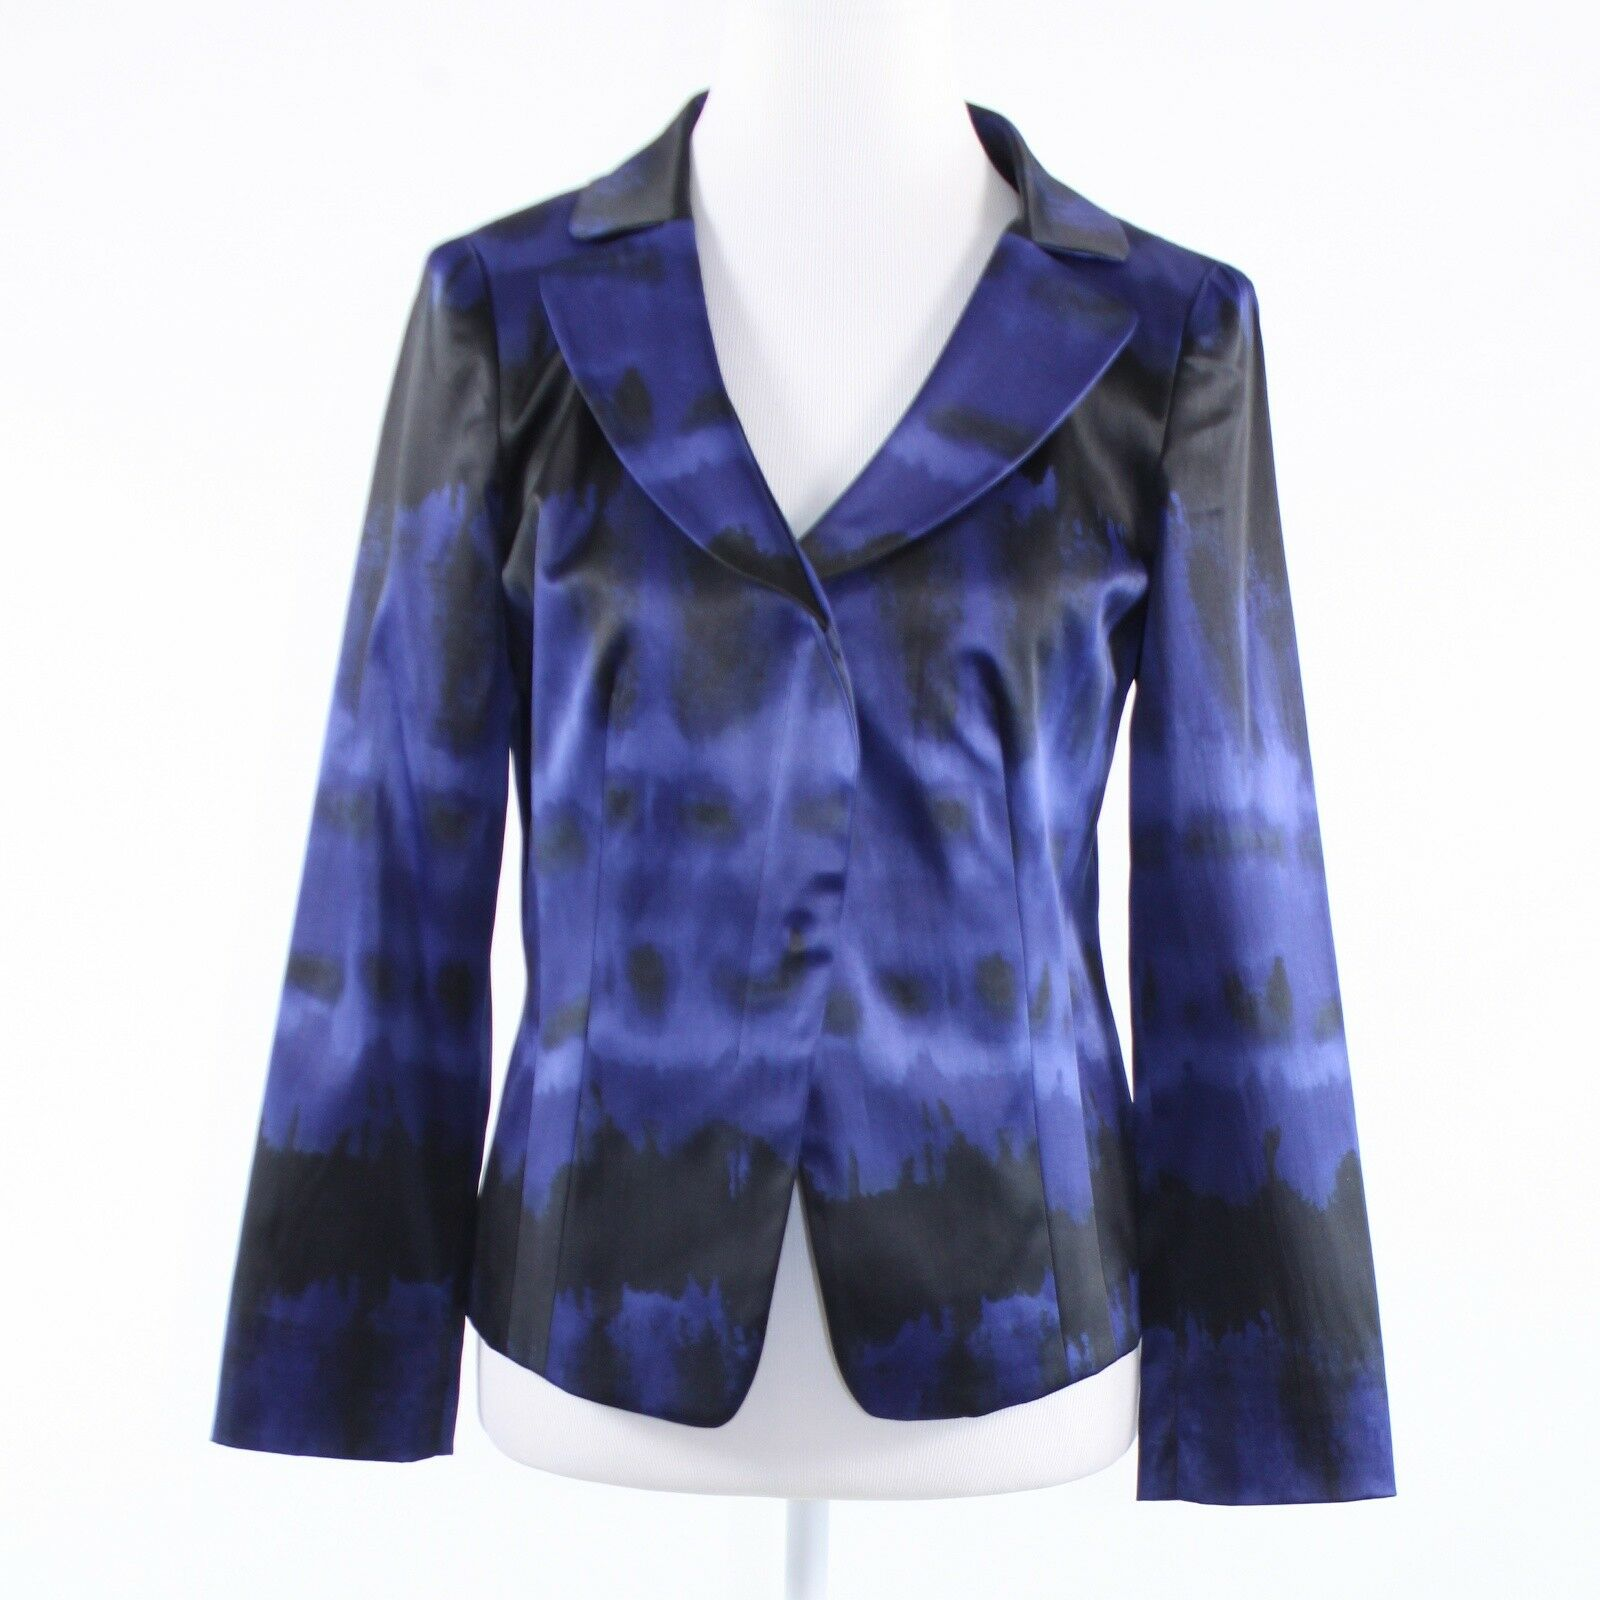 Black purple abstract cotton blend KENNETH COLE NEW YORK long sleeve jacket 6-Newish